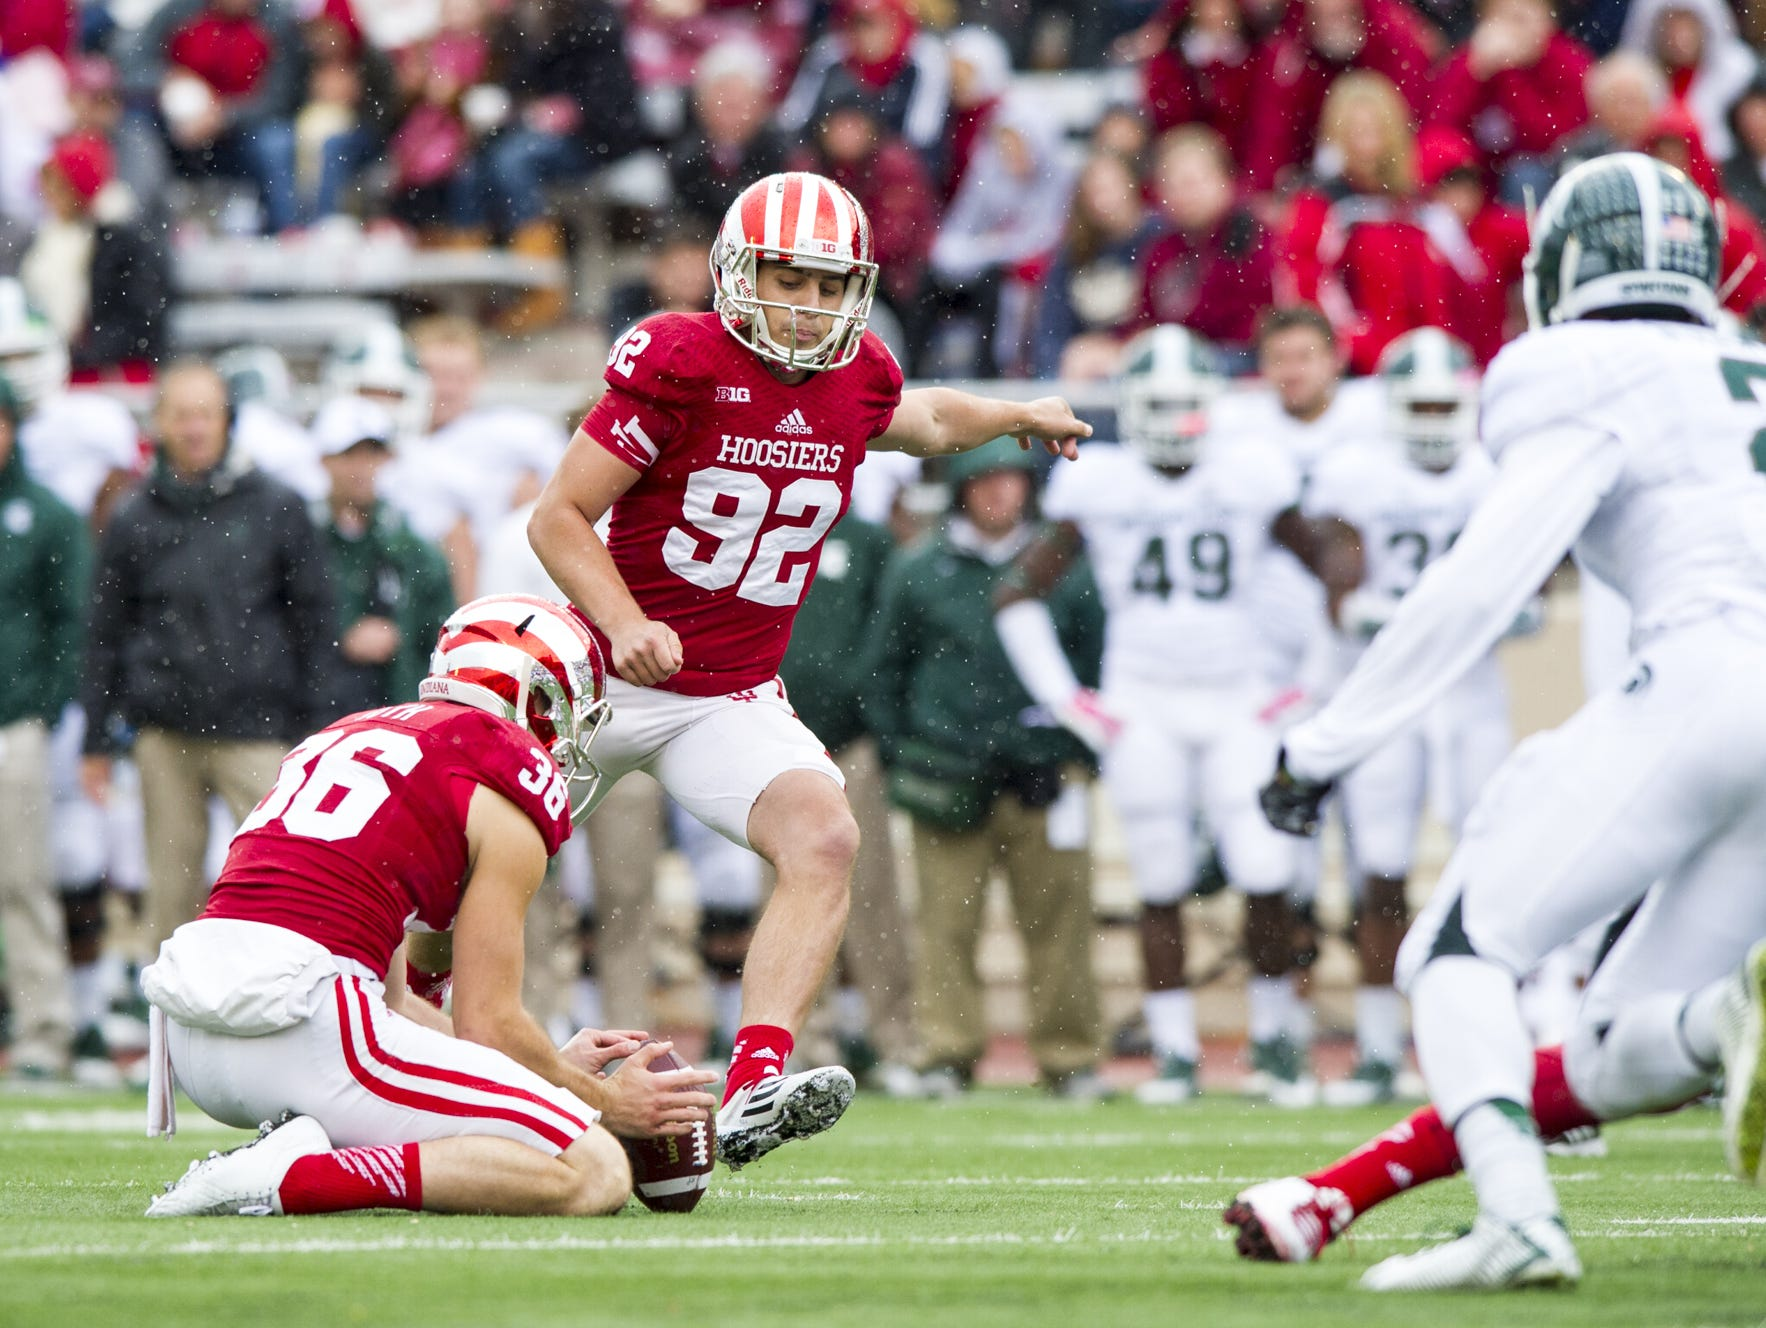 Indiana's Griffin Oakes (92)